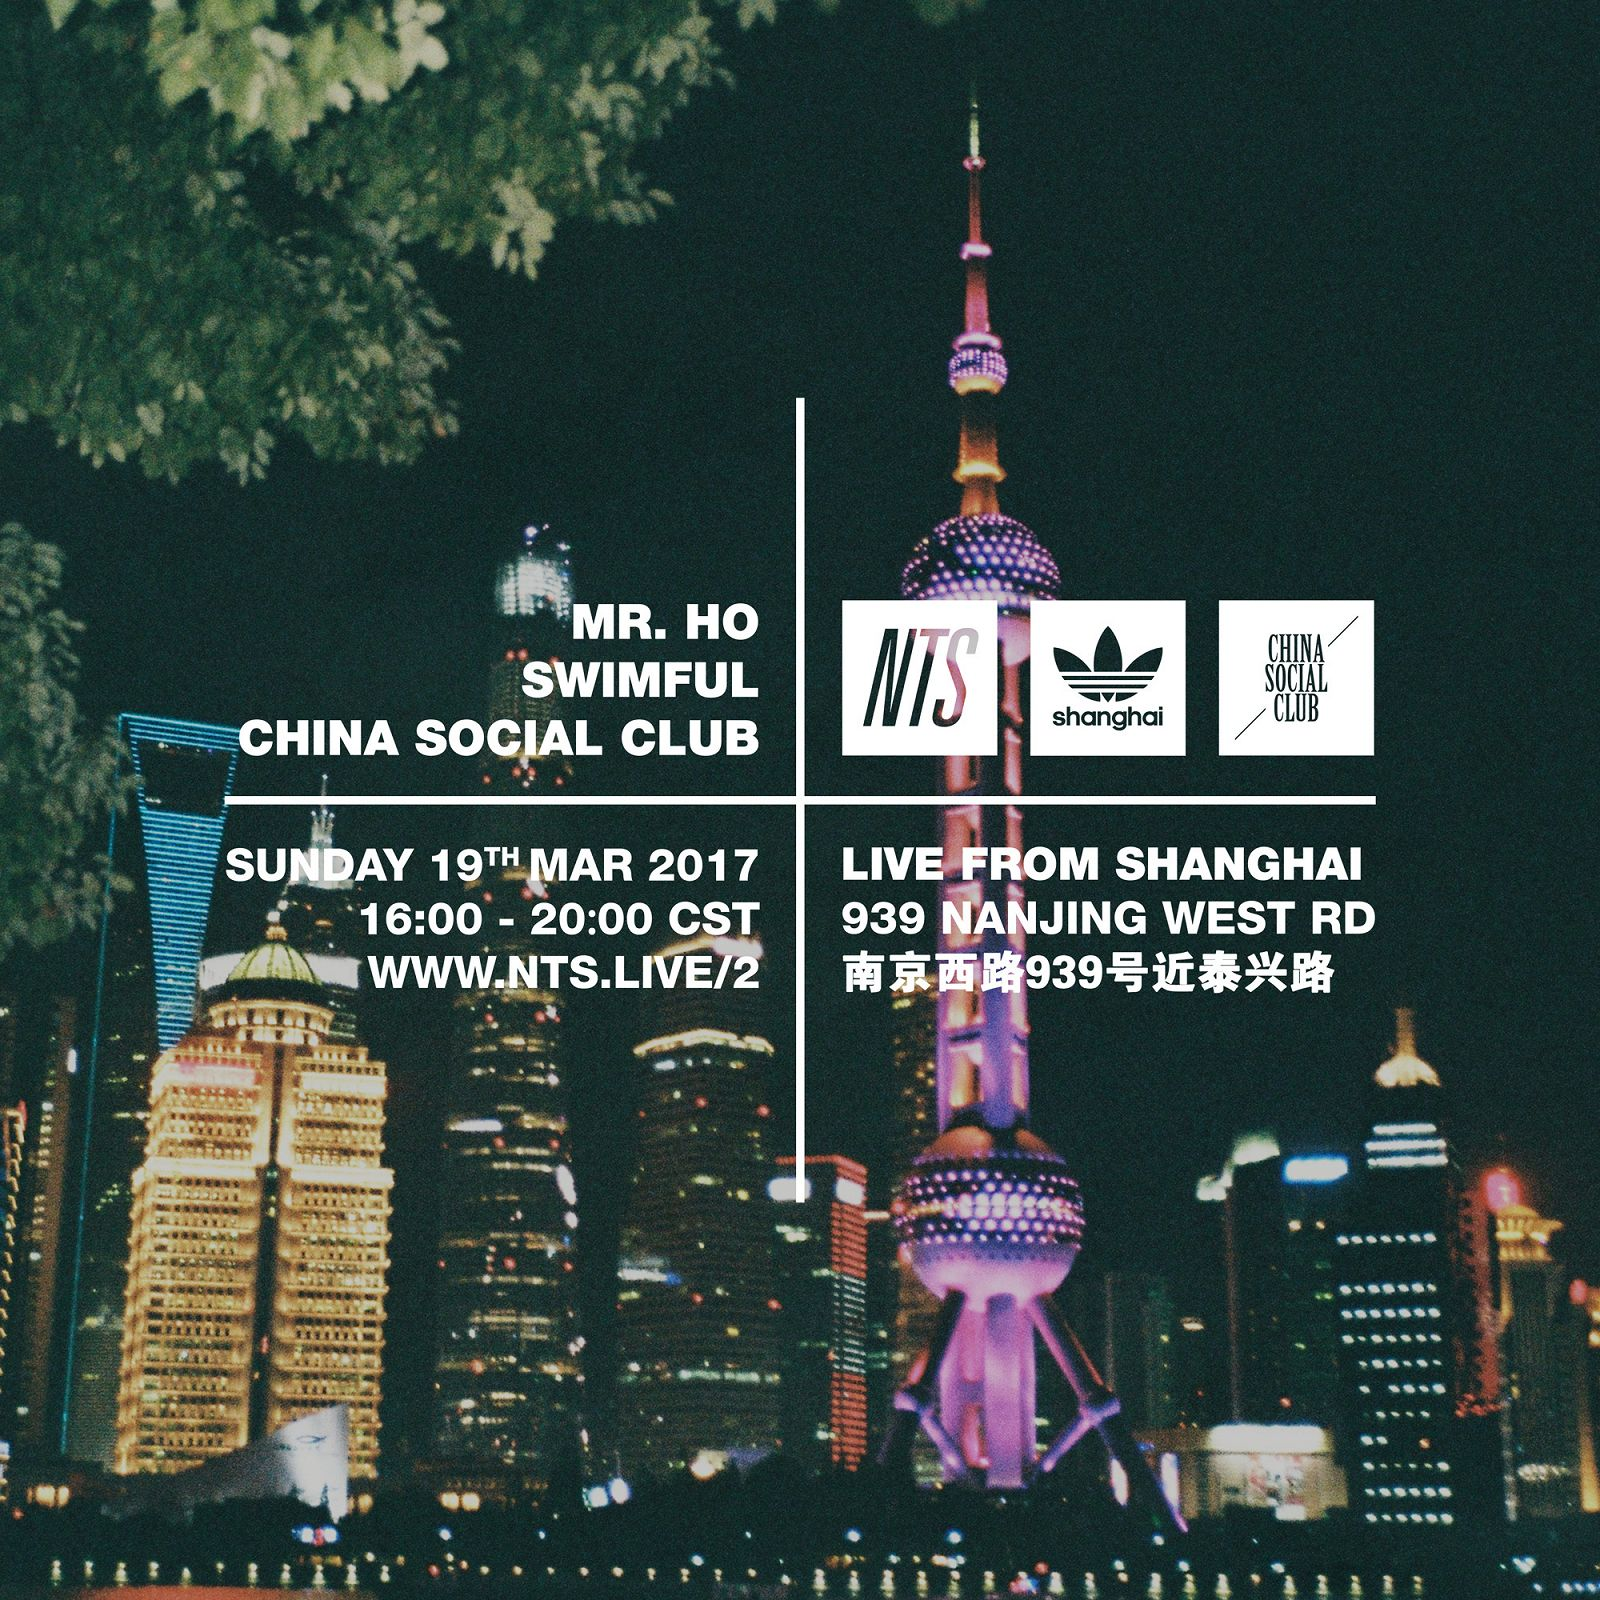 NTS ADIDAS SHANGHAI CHINA SOCIAL CLUB - Live from Shanghai 19.03.17 Artwork3.jpg